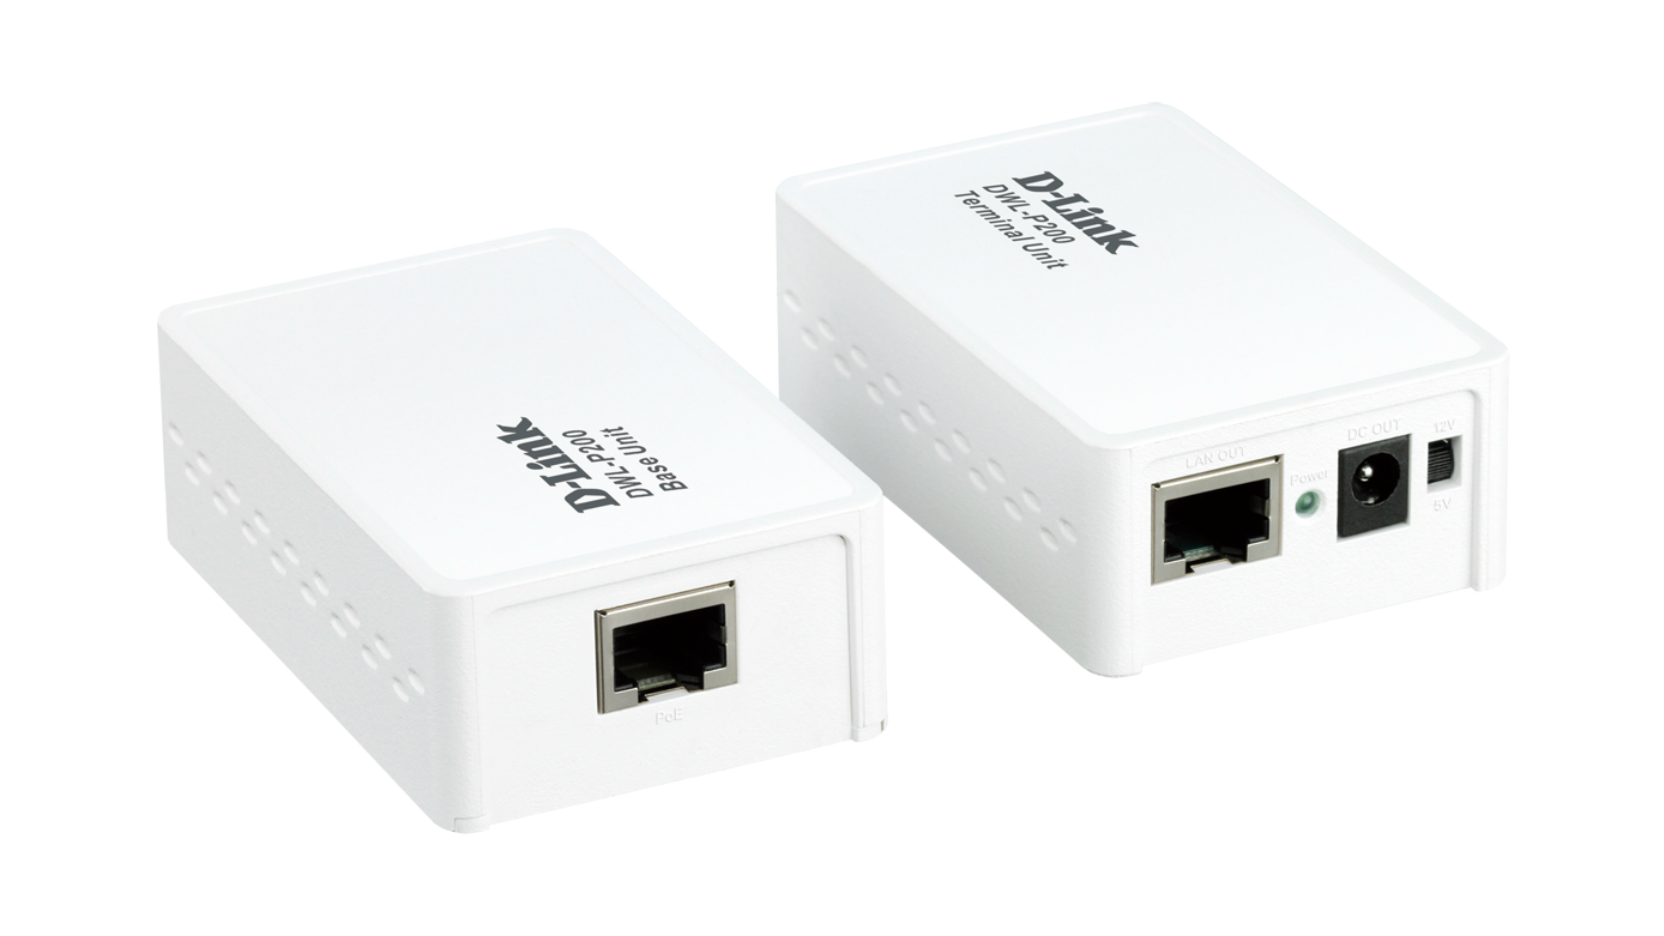 Dwl P200 Power Over Ethernet Adapter Kit D Link Uk